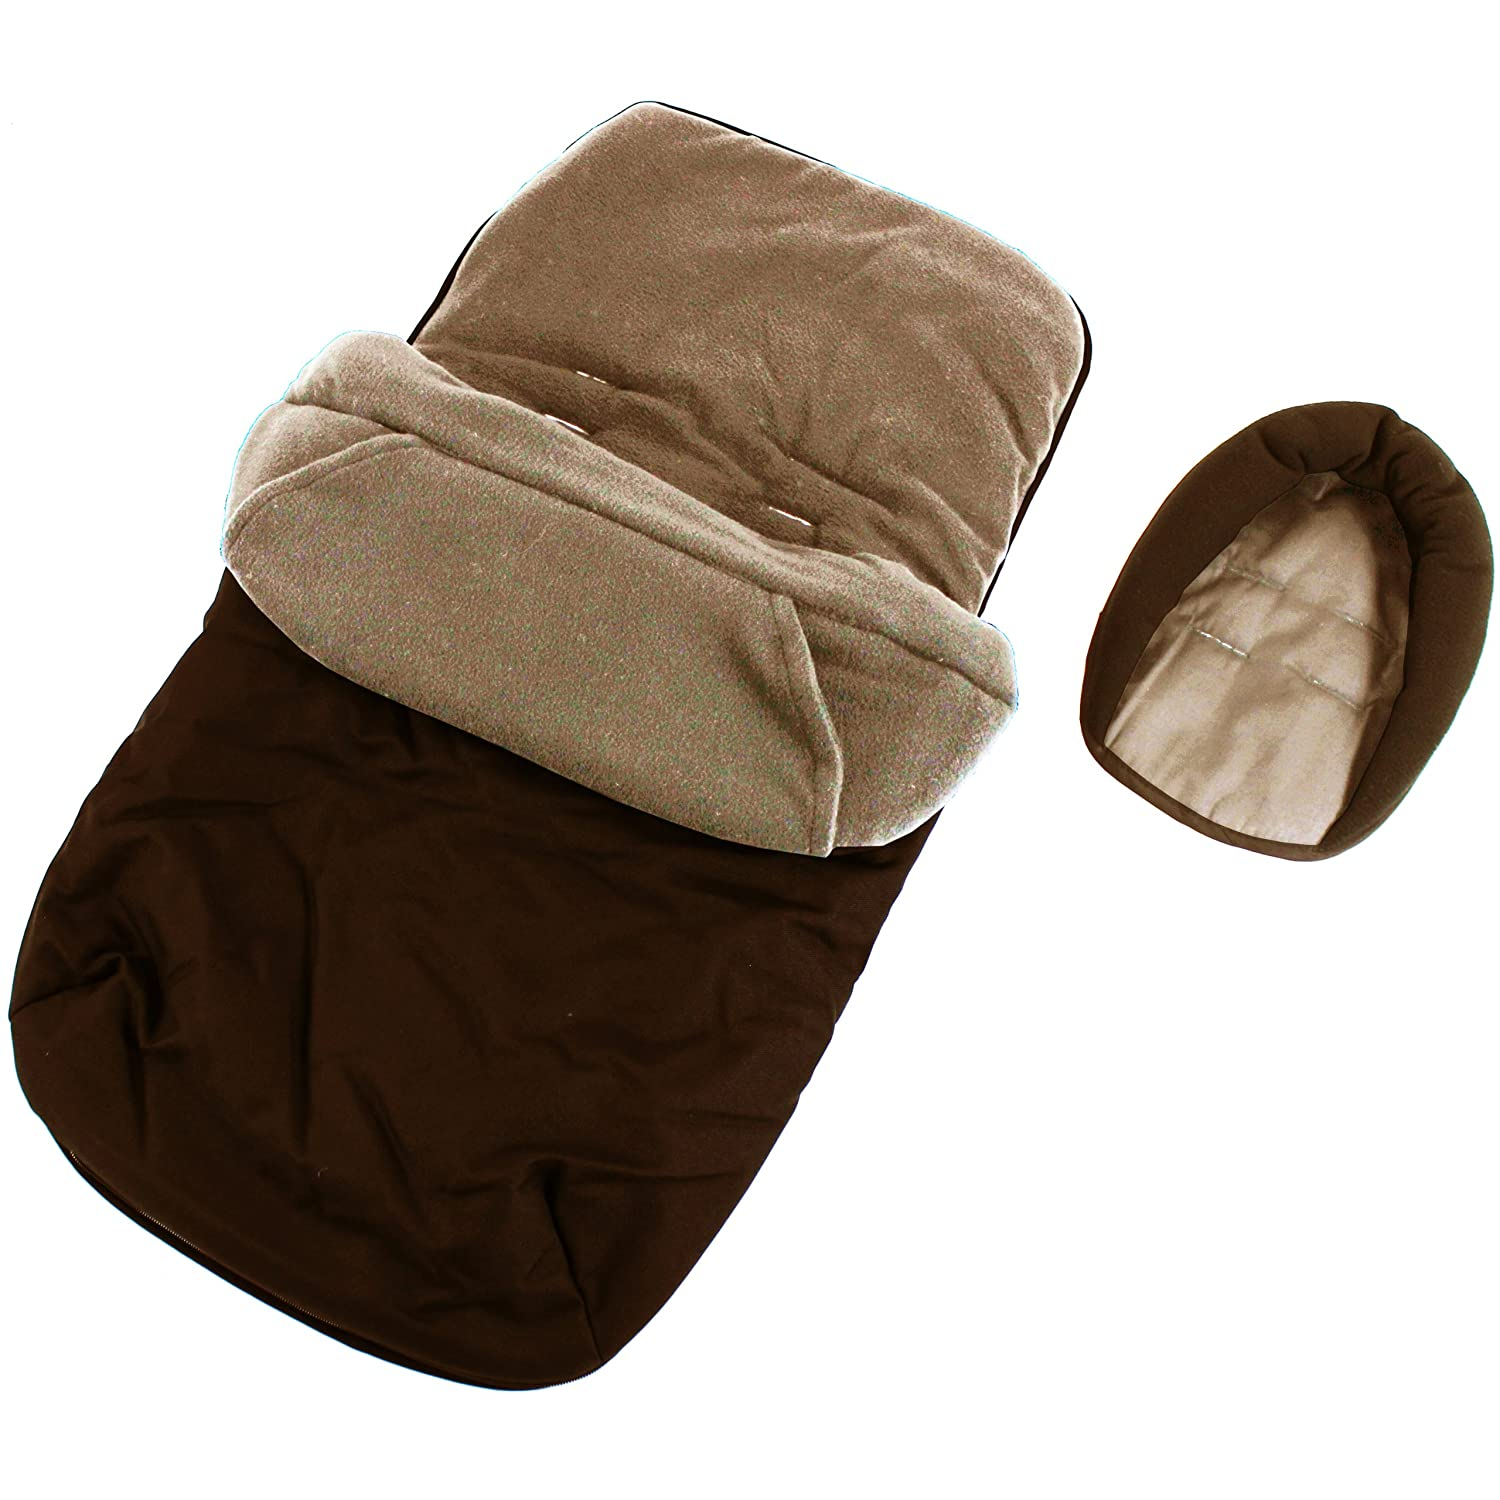 3 In 1 Luxury Padded With Pouches Footmuff Liner And Baby Head Hugger Fits Any Stroller Pram Or Buggy - Hot Chocolate Brown Baby Travel®